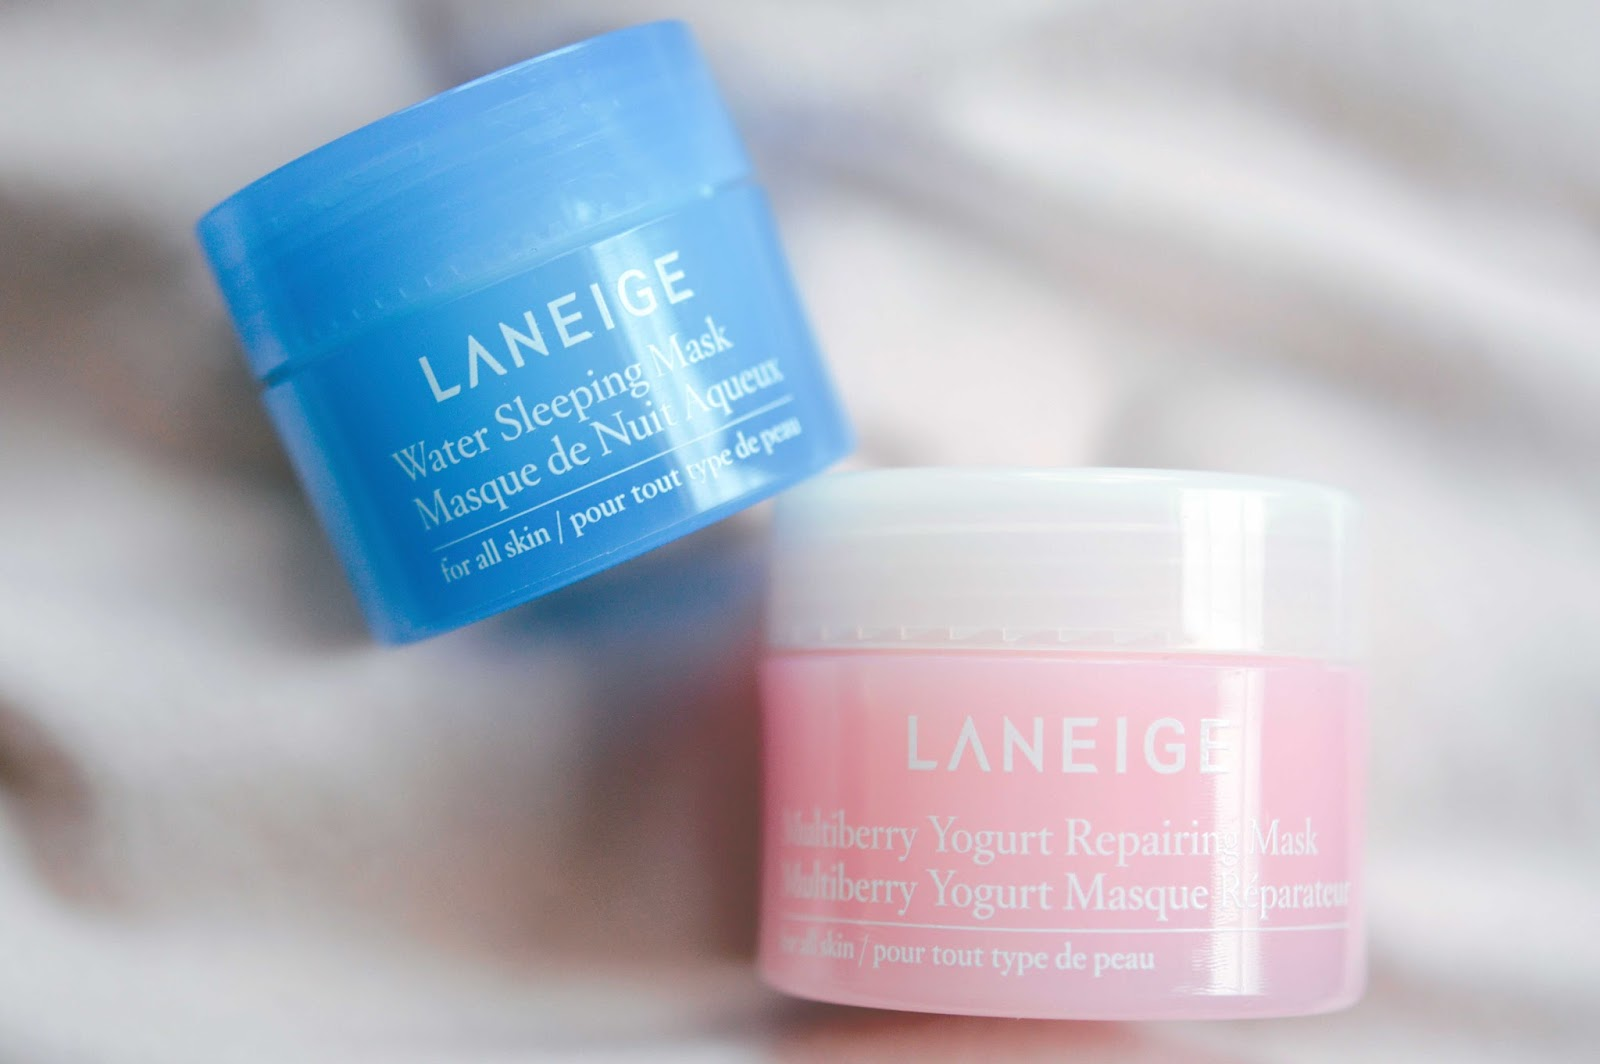 Laneige Good Night Kit Review